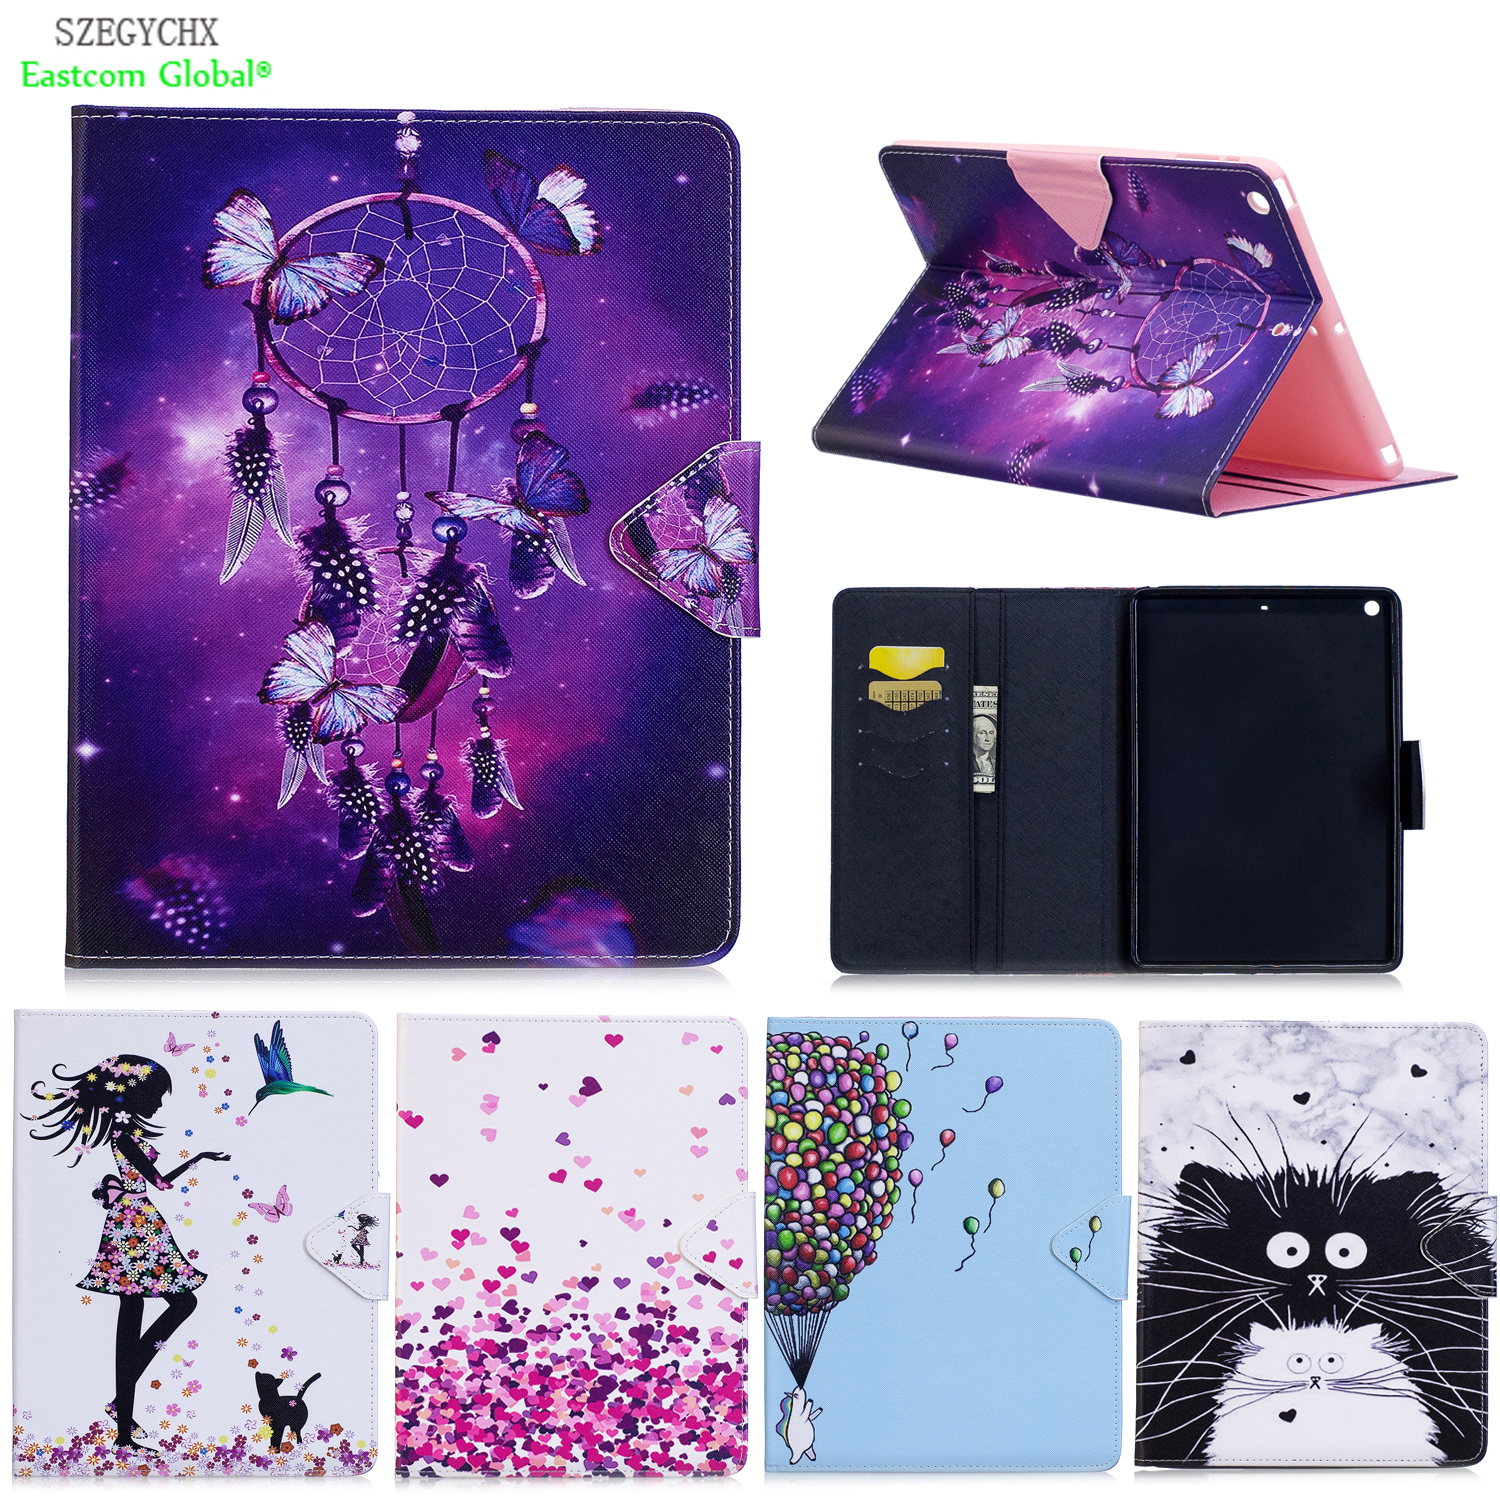 Cover For iPad Air 1,SZEGYCHX PU Leather Smart Stand Shell Tablet Case For ipad 5,9.7 inch with Auto Wake Up/Sleep ctrinews flip case for ipad air 2 smart stand pu leather case for ipad air 2 tablet protective case wake up sleep cover coque